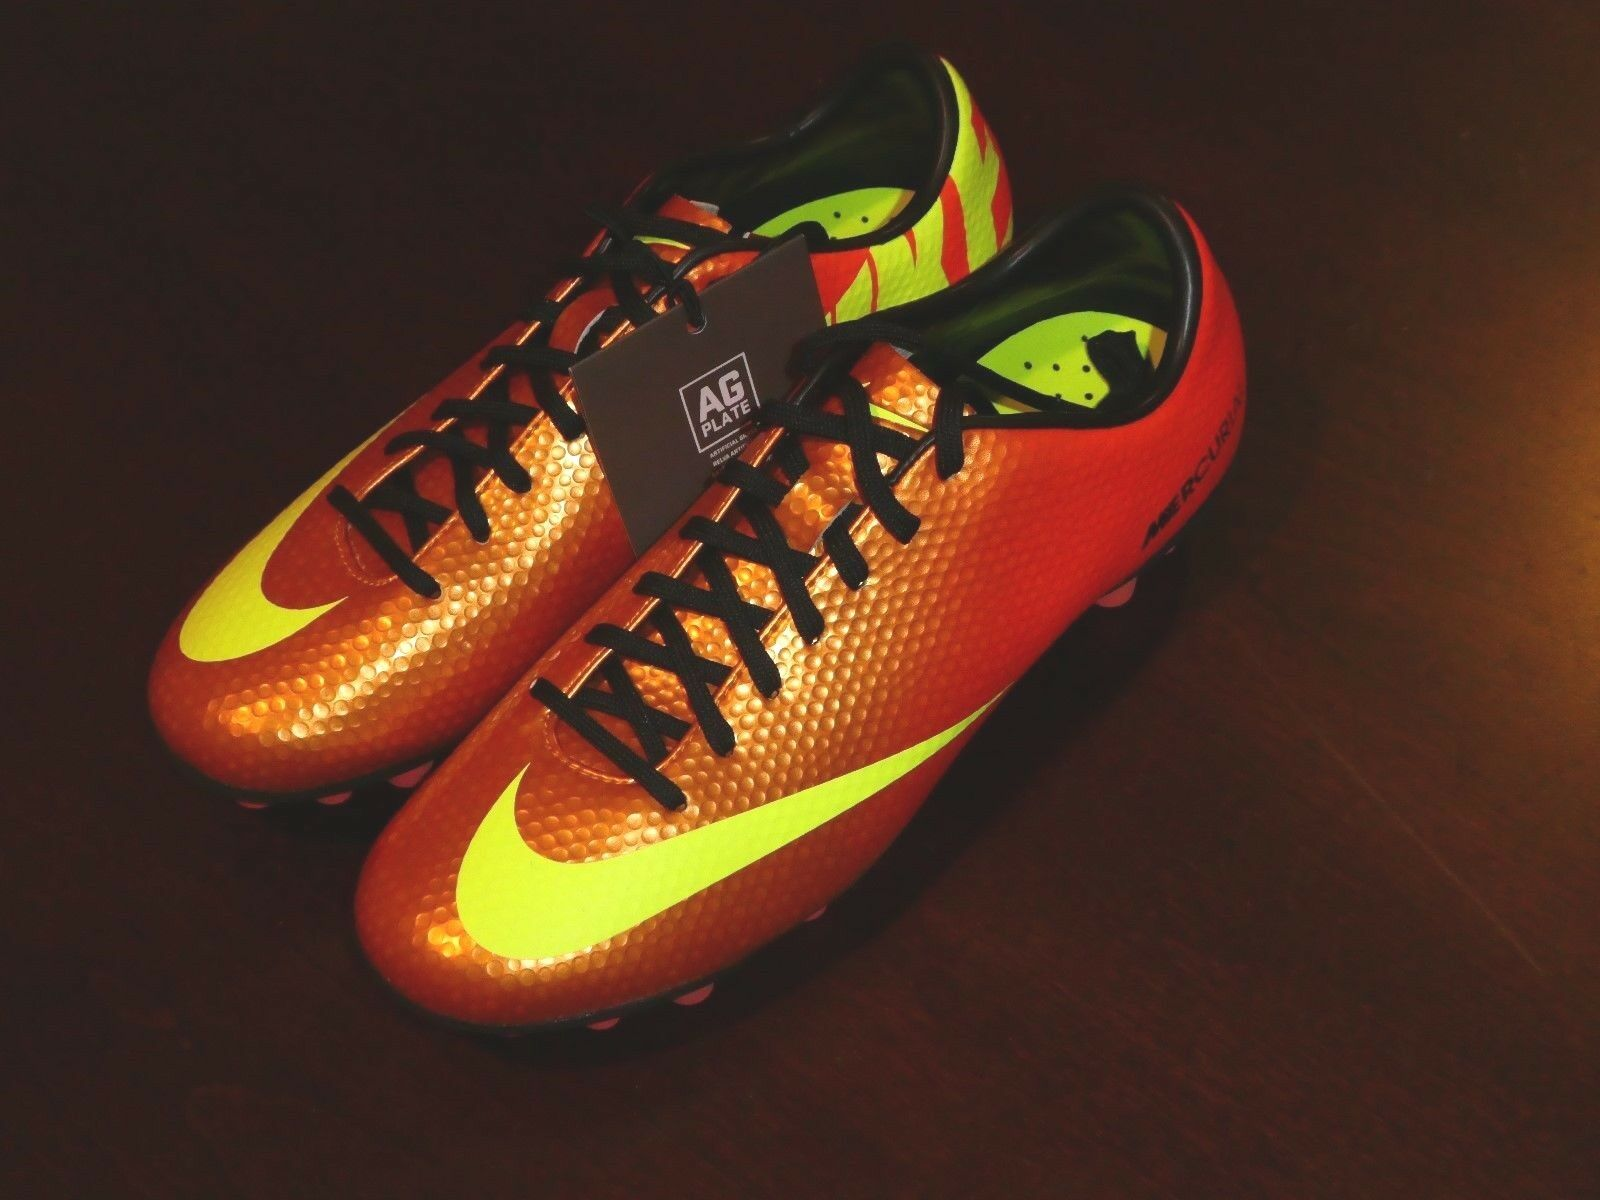 Nike Mercurial Veloce AG Soccer Cleats new shoes 555609 778 Artificial Grass